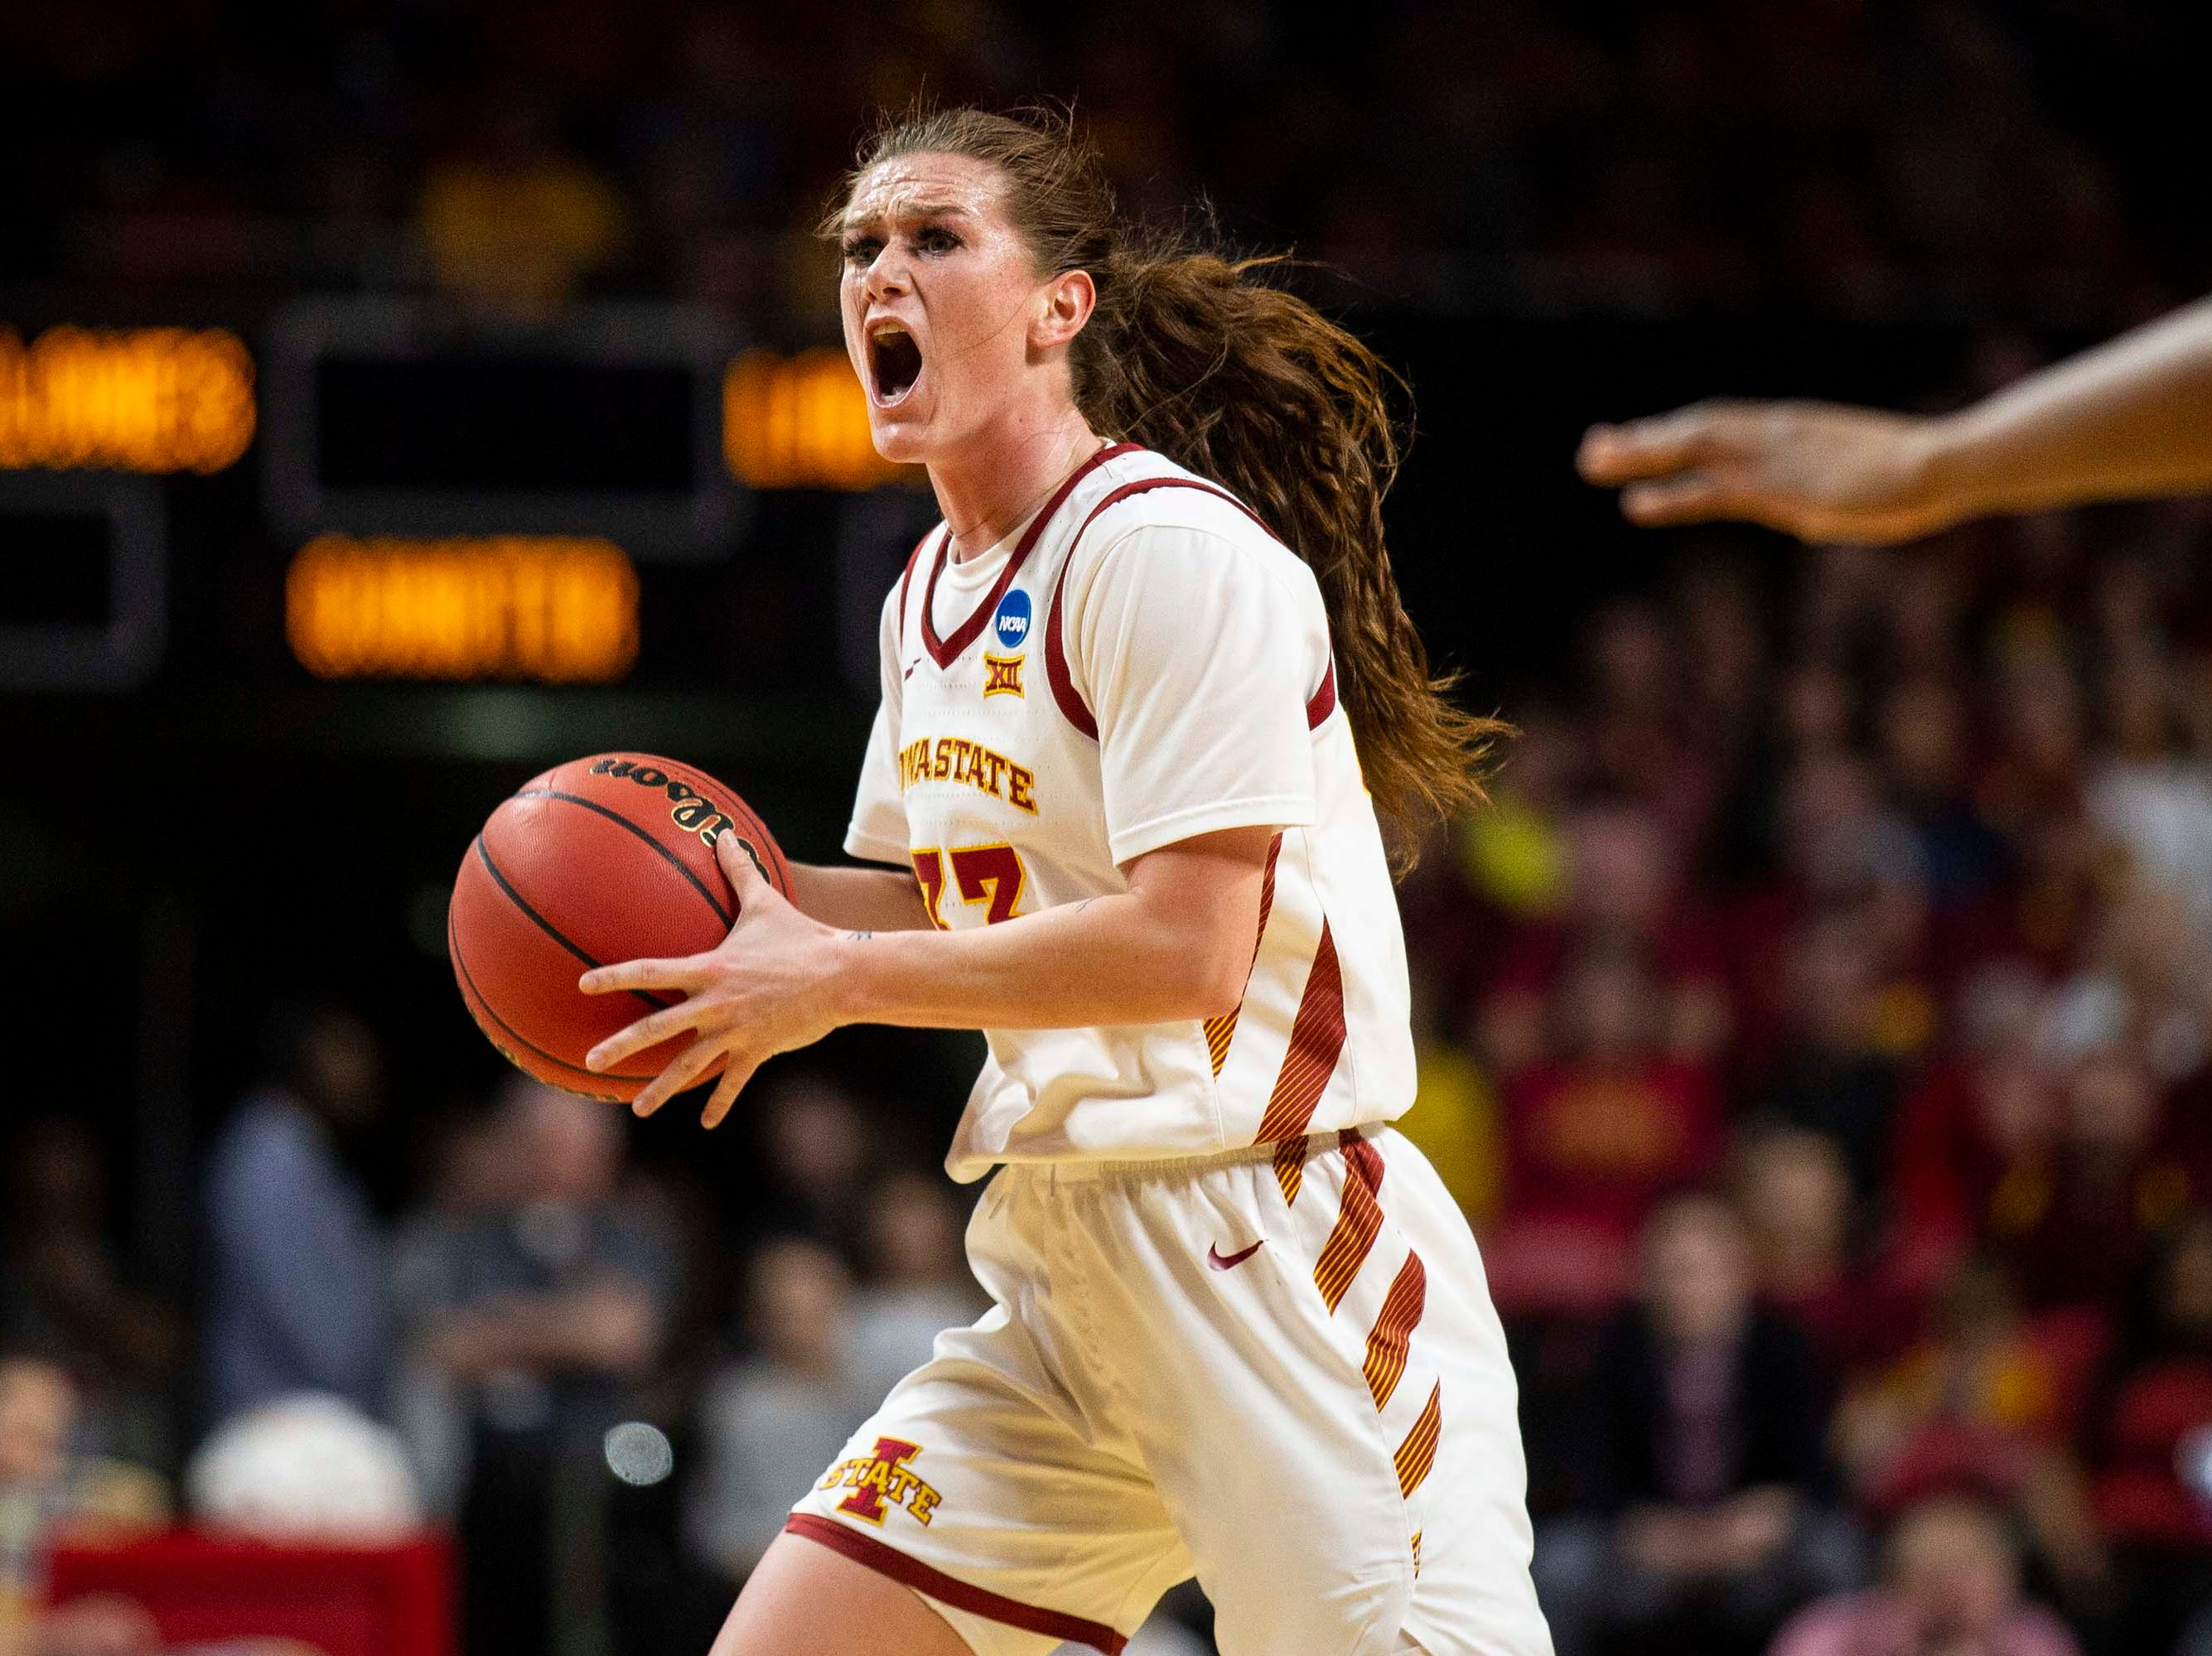 Iowa State's Alexa Middleton calls out a play during the NCAA Tournament second-round match-up between Iowa State and Missouri State on Monday, March 25, 2019, in Hilton Coliseum, in Ames, Iowa.